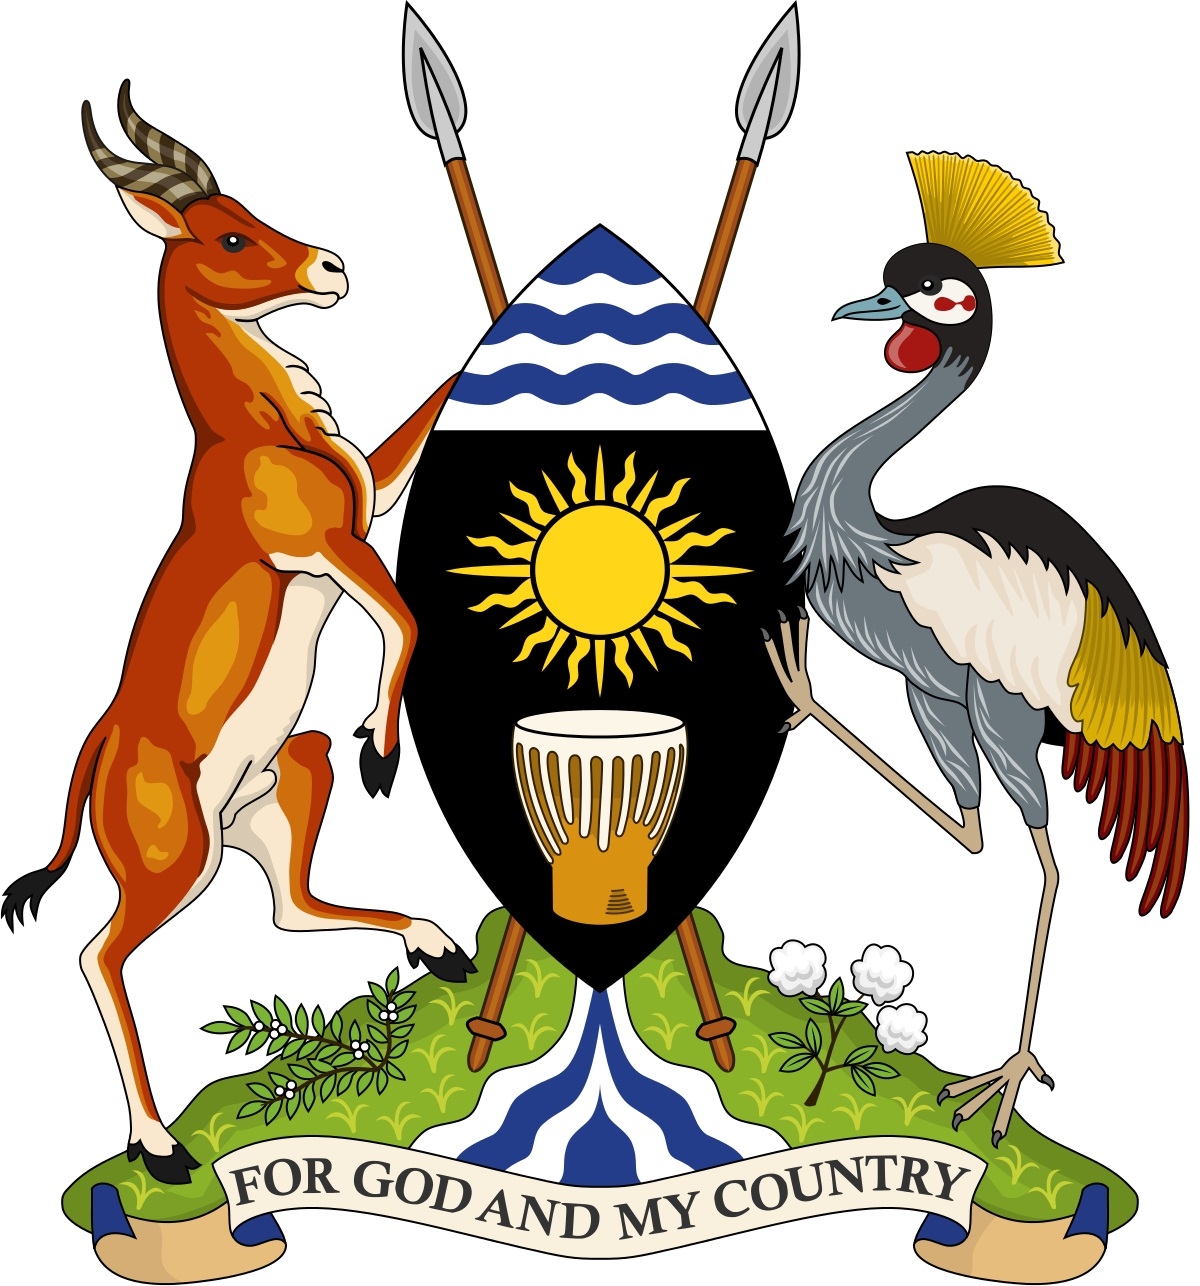 69df53ffc6d3cac - Coronavirus - Uganda: 5 new cases of COVID-19 confirmed bringing the total to 23 cases in Uganda